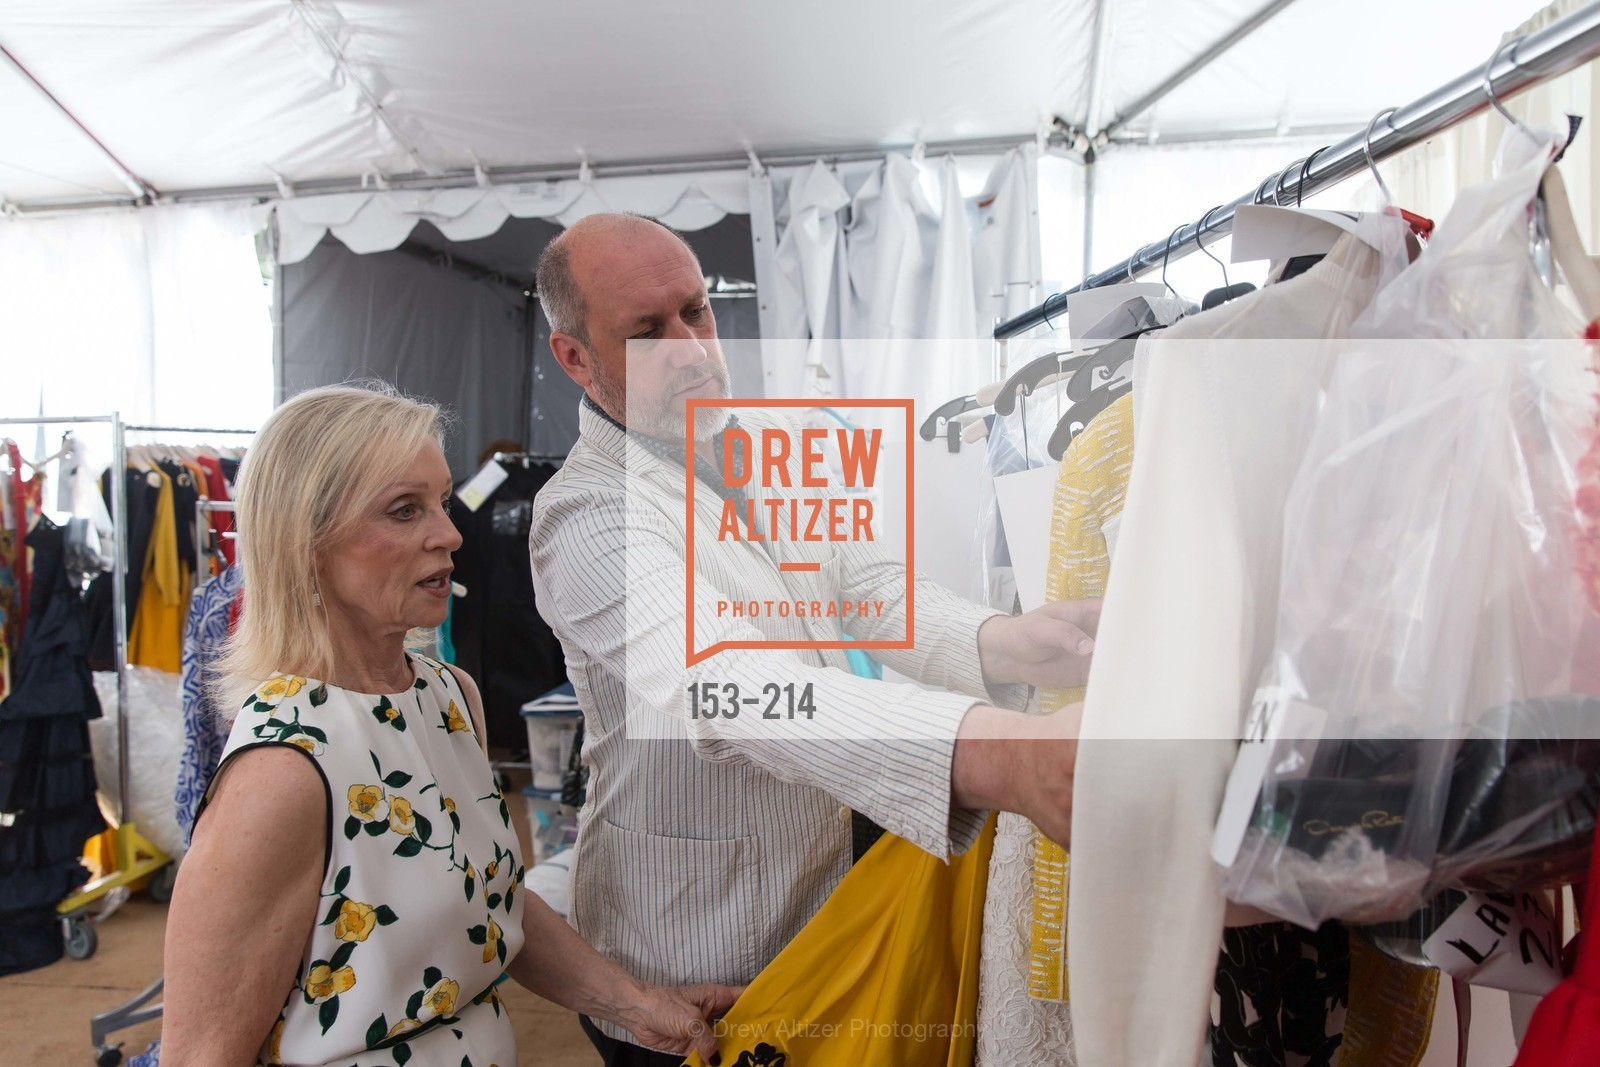 Barbara Brown, Peter Copping, Saks Fifth Avenue and The League to Save Lake Tahoe Present Fashion on the Lake, Private Residence, August 1st, 2015,Drew Altizer, Drew Altizer Photography, full-service event agency, private events, San Francisco photographer, photographer California